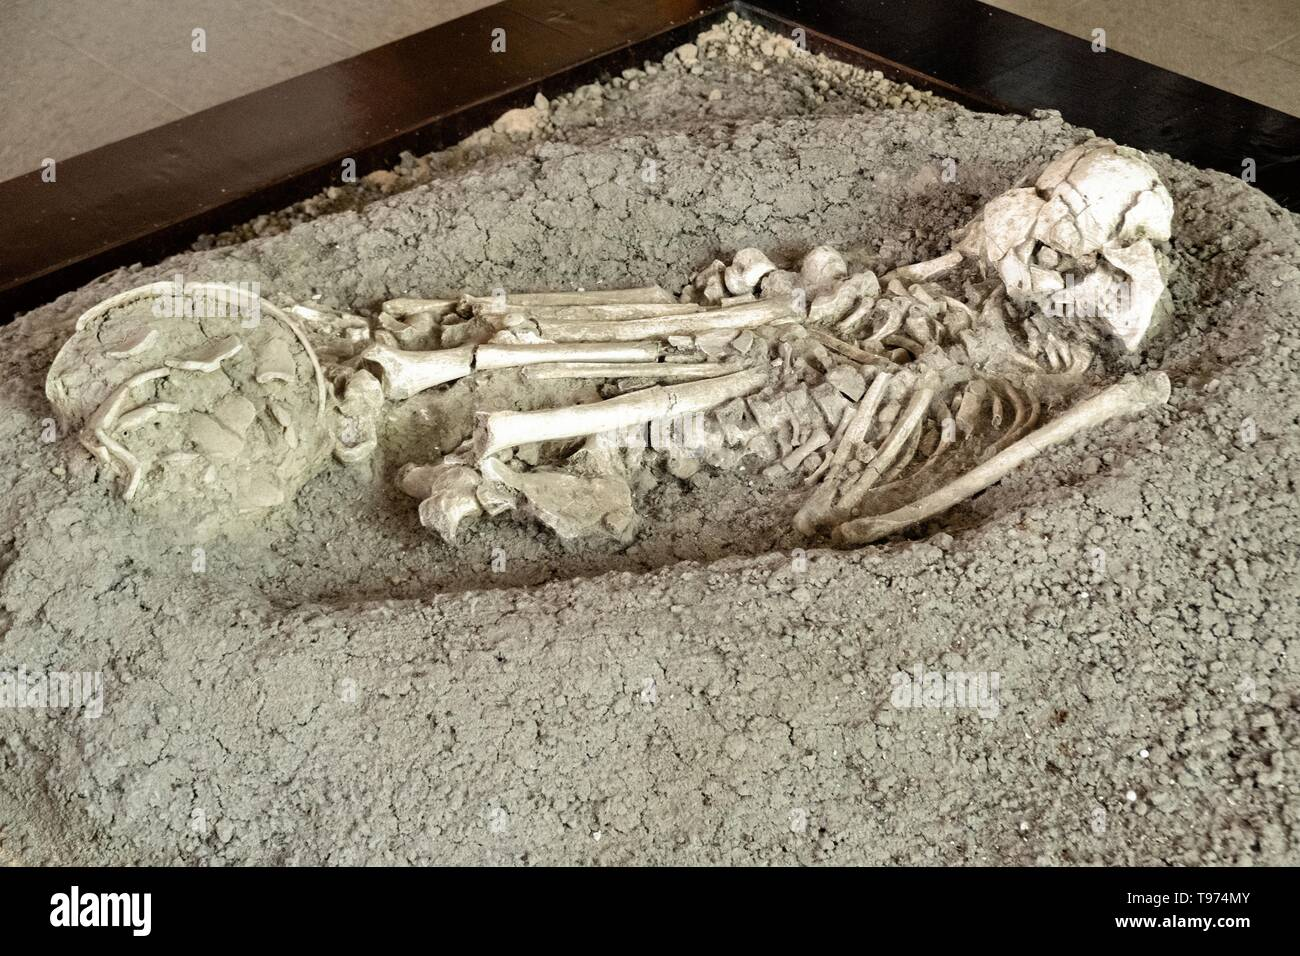 A Mesoamerica skeletal remains from a burial chamber on display in the museum at the pre-Columbian archeological complex of El Tajin in Tajin, Veracruz, Mexico. El Tajín flourished from 600 to 1200 CE and during this time numerous temples, palaces, ballcourts, and pyramids were built by the Totonac people and is one of the largest and most important cities of the Classic era of Mesoamerica. - Stock Image